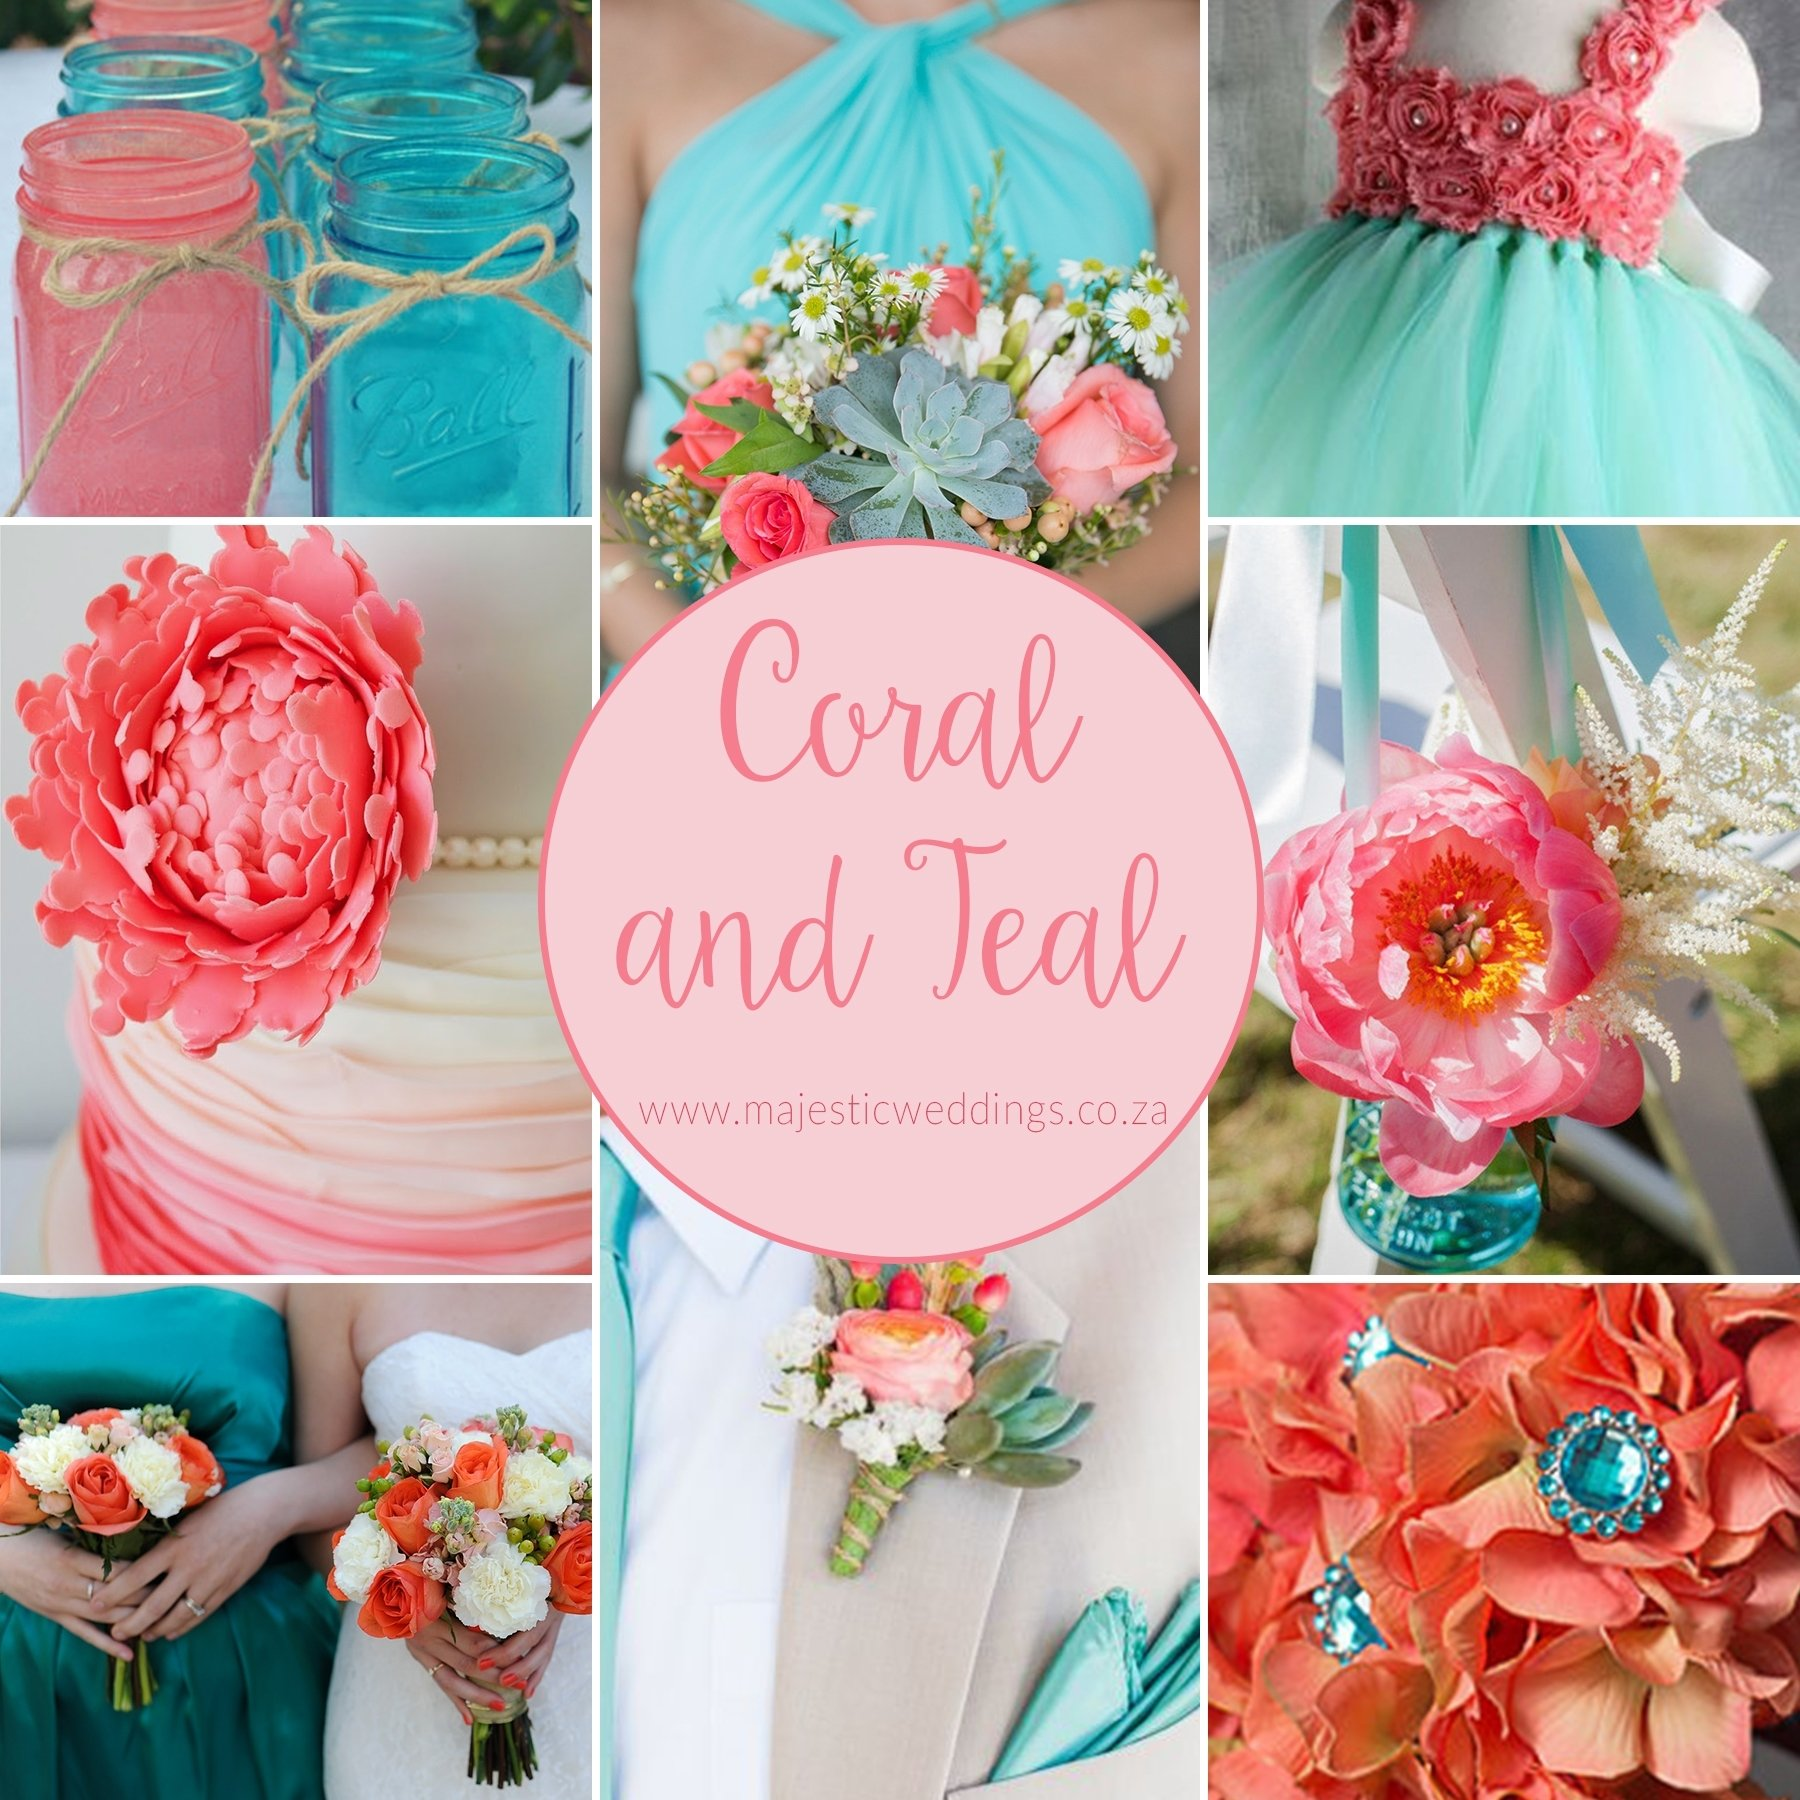 emejing coral and teal wedding ideas contemporary - styles & ideas